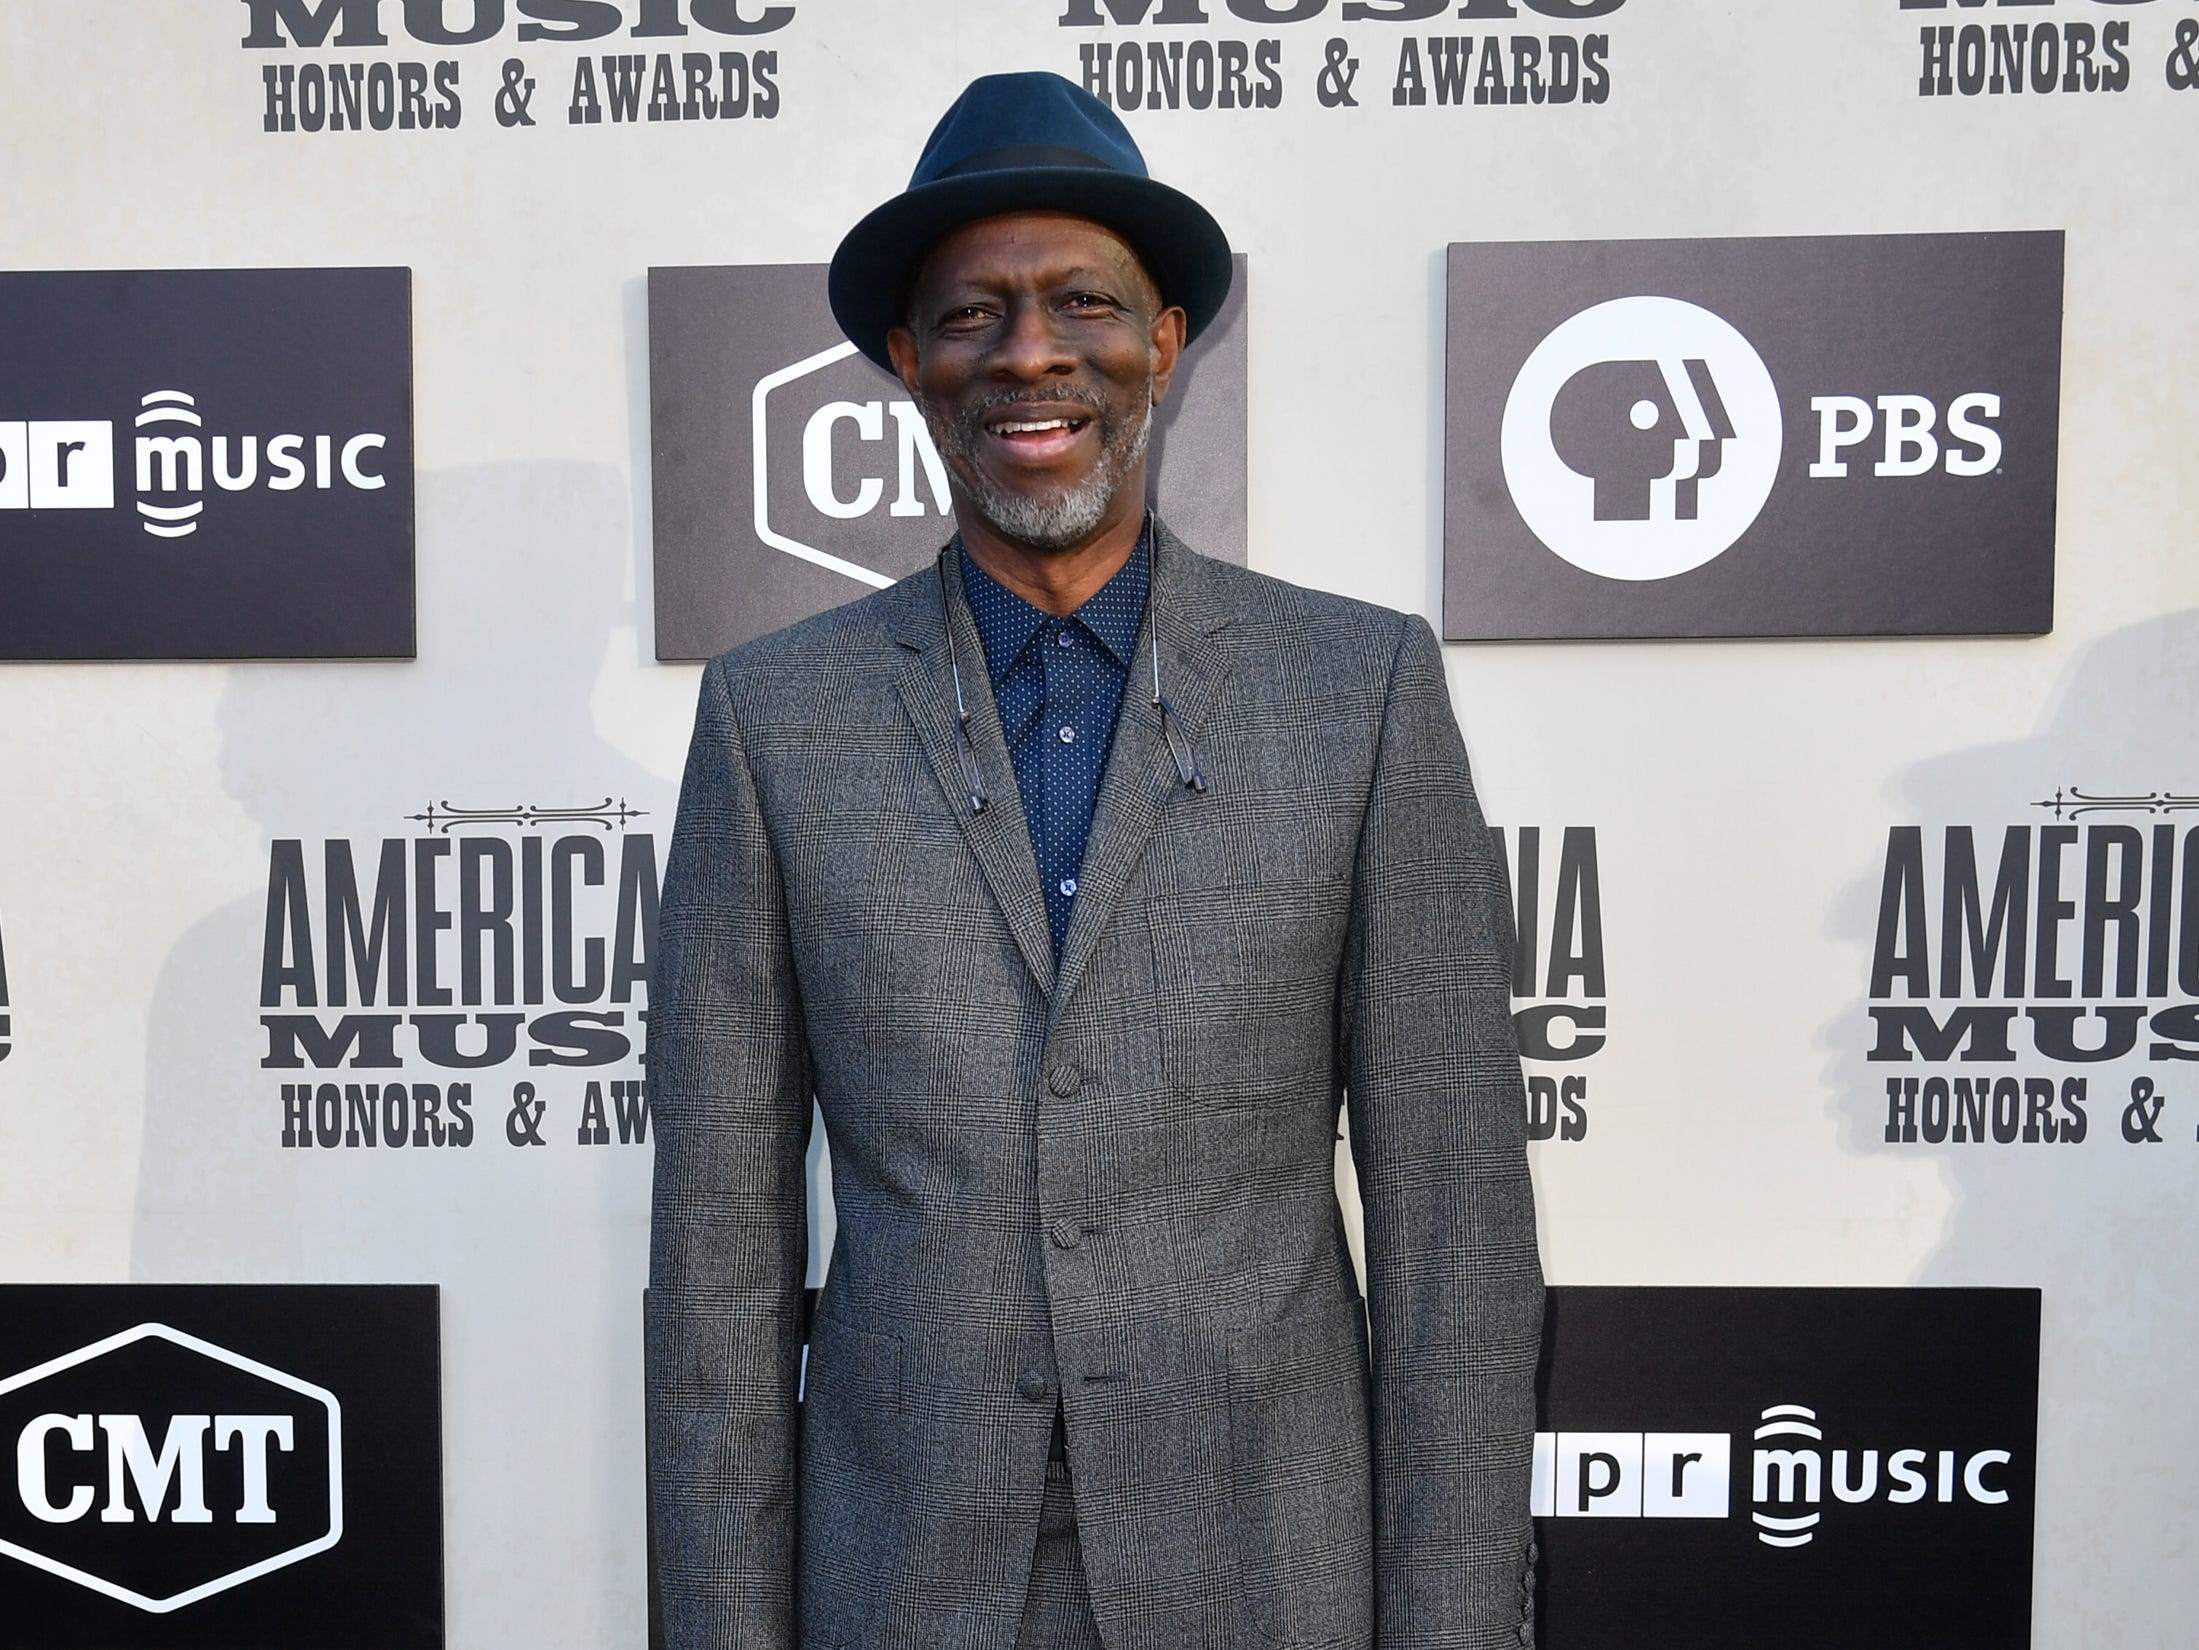 Keb' Mo' poses on the red carpet before the 2018 Americana Honors and Awards show at the Ryman Auditorium in Nashville, Tenn., Wednesday, Sept. 12, 2018.